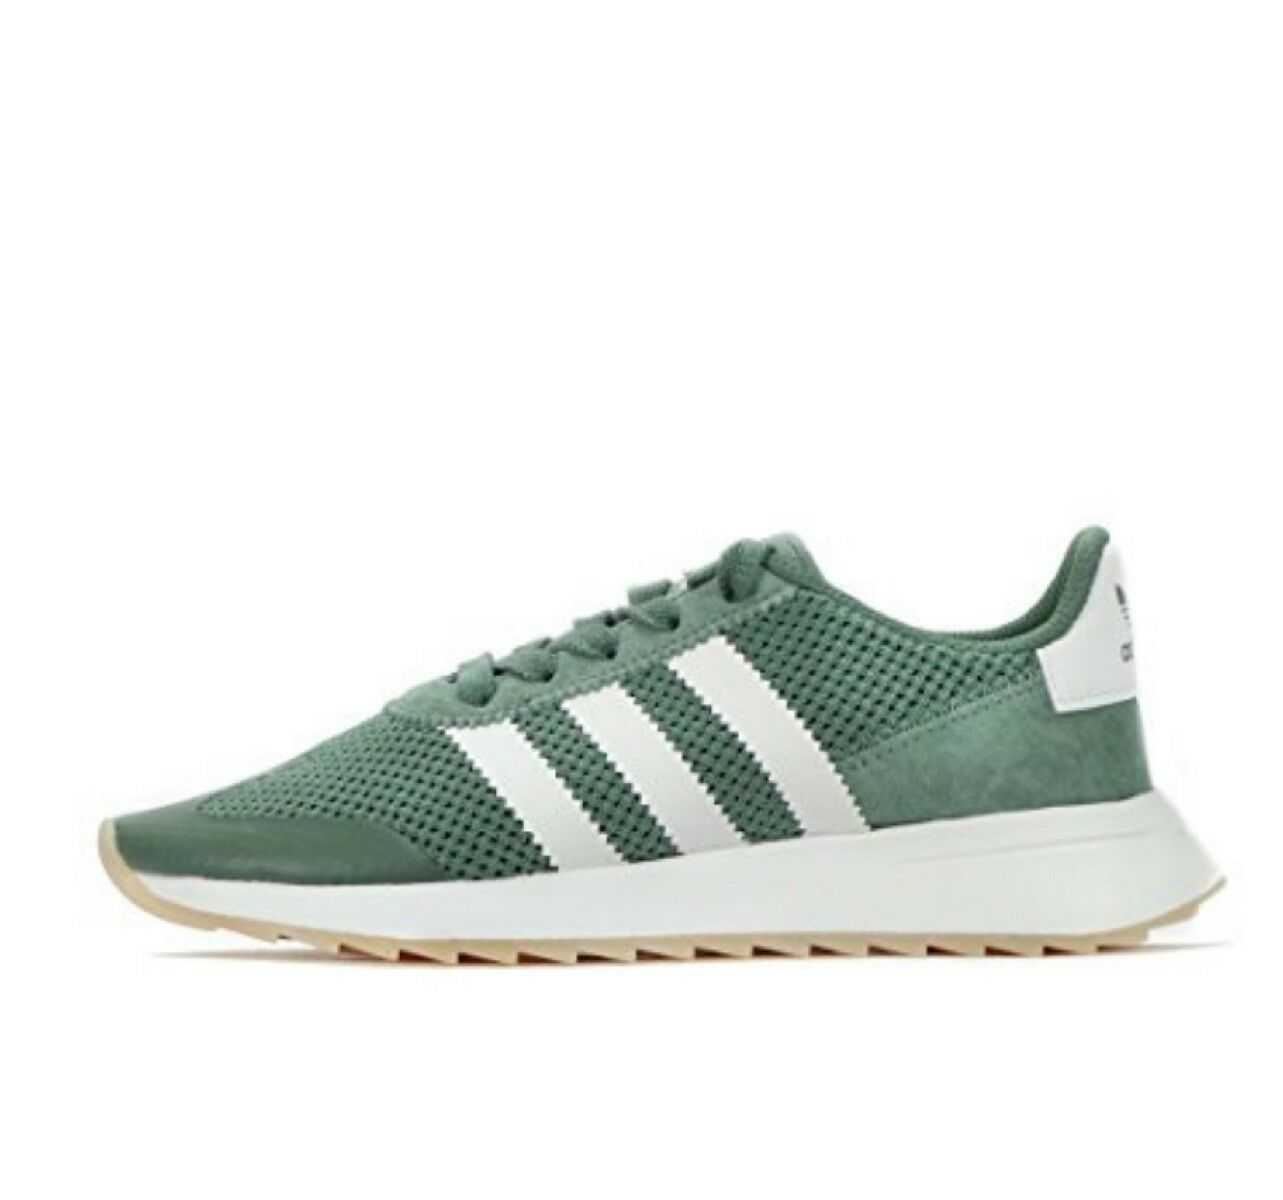 Adidas flashback donne  scarpe di serie 6.5 run  ultimi stili